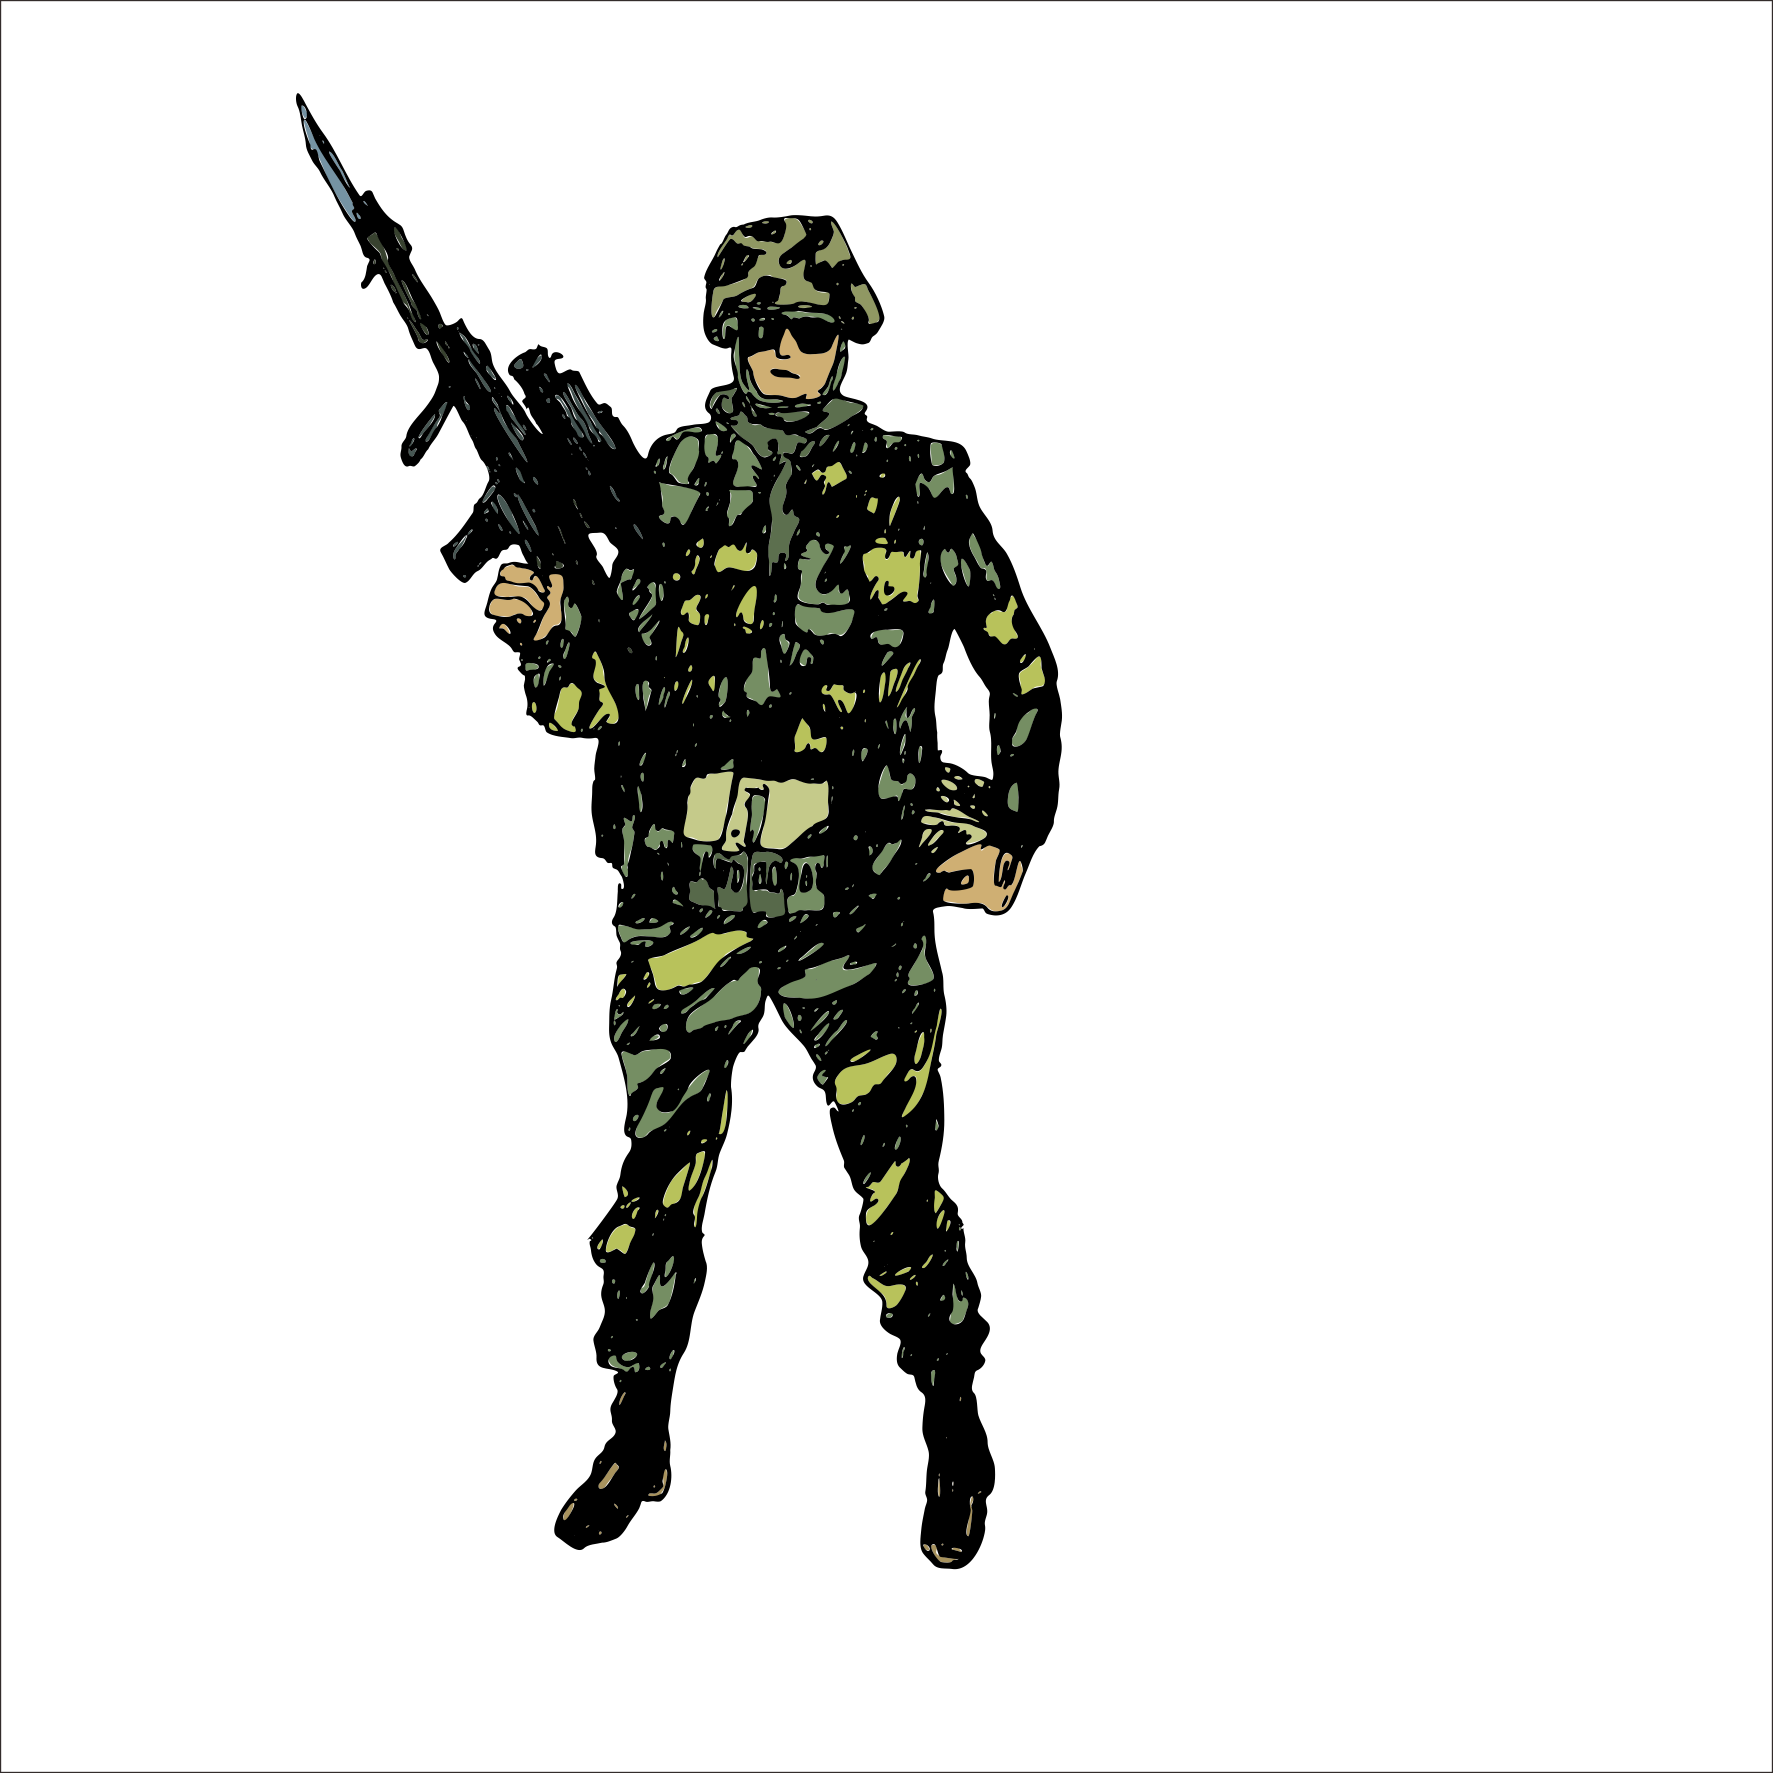 Army soldiers png. Military soldier drawing clip